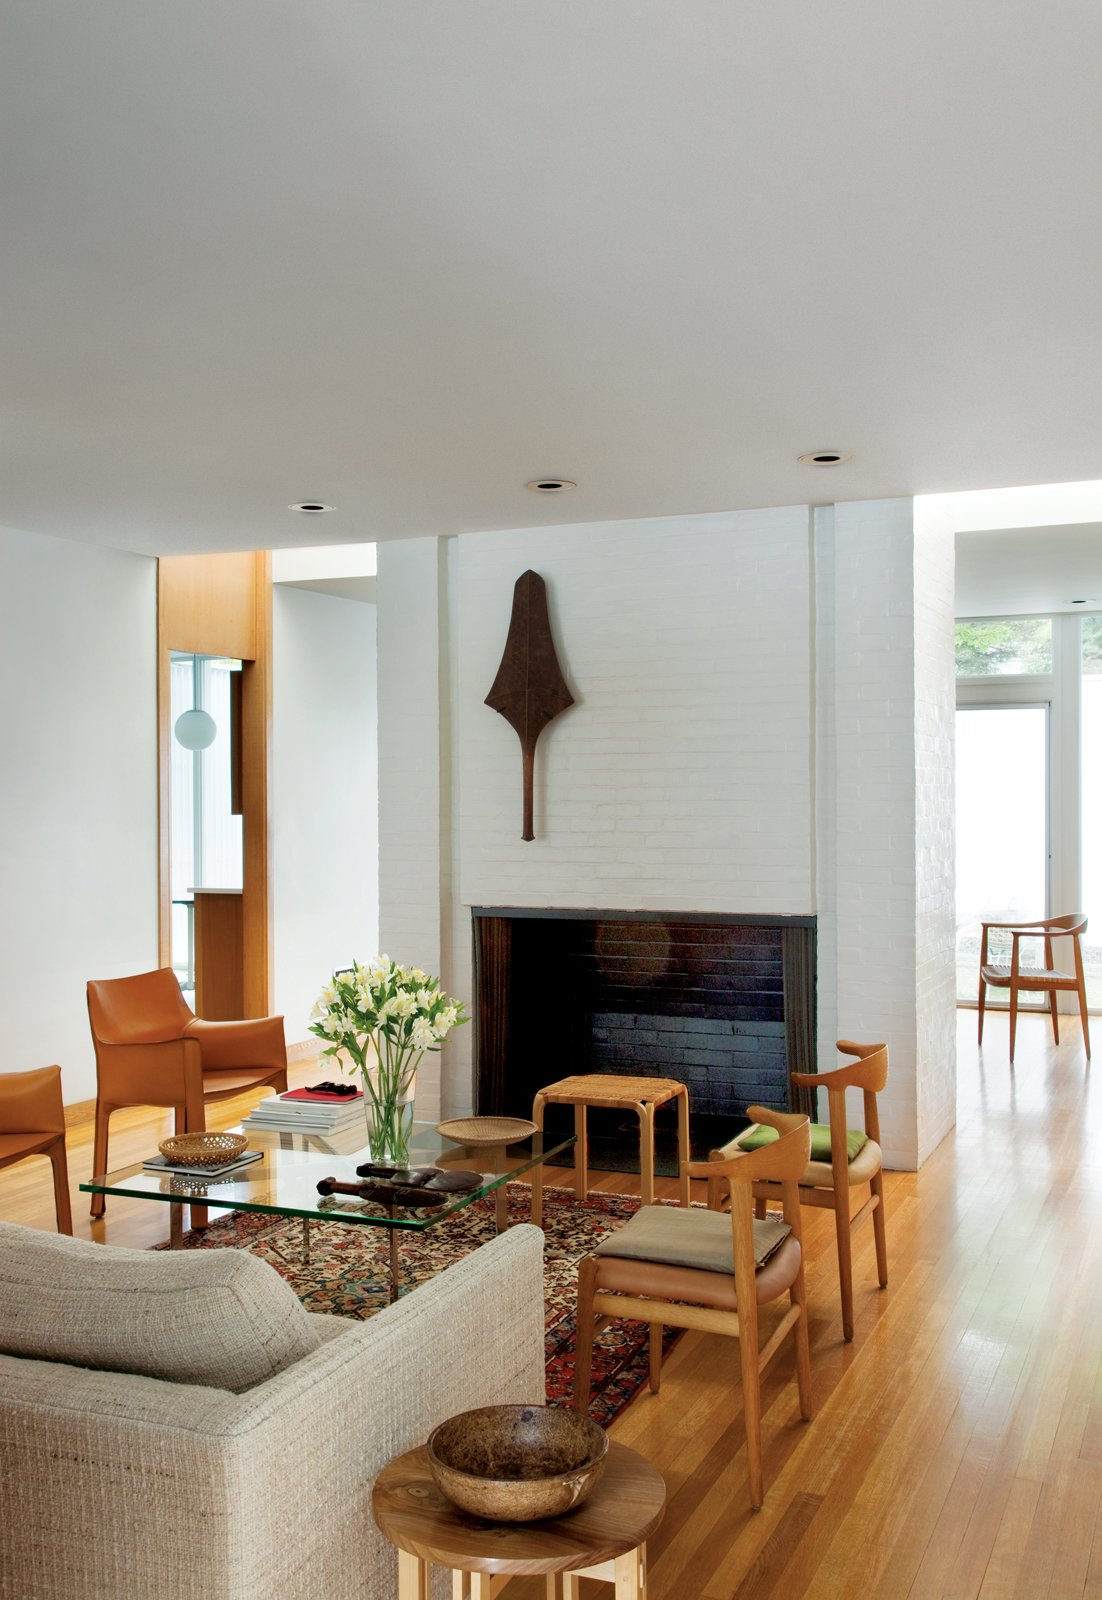 A club from the Fiji islands is mounted on the wall of the fireplace that divides the living and dining rooms. The dining room—furnished with two Cab chairs by Mario Bellini for Cassina, a pair of Cowhorn chairs by Hans J. Wegner for Johannes Hansen, the Barcelona Table by Mies van der Rohe for Knoll, and a Y61 stool by Alvar Aalto for Artek—has no windows, but lightwells on either side of the chimney provide brightness. Another design by Wegner, the Chair, peeks out from the dining room.  Photo 5 of 8 in The House of a Lifetime